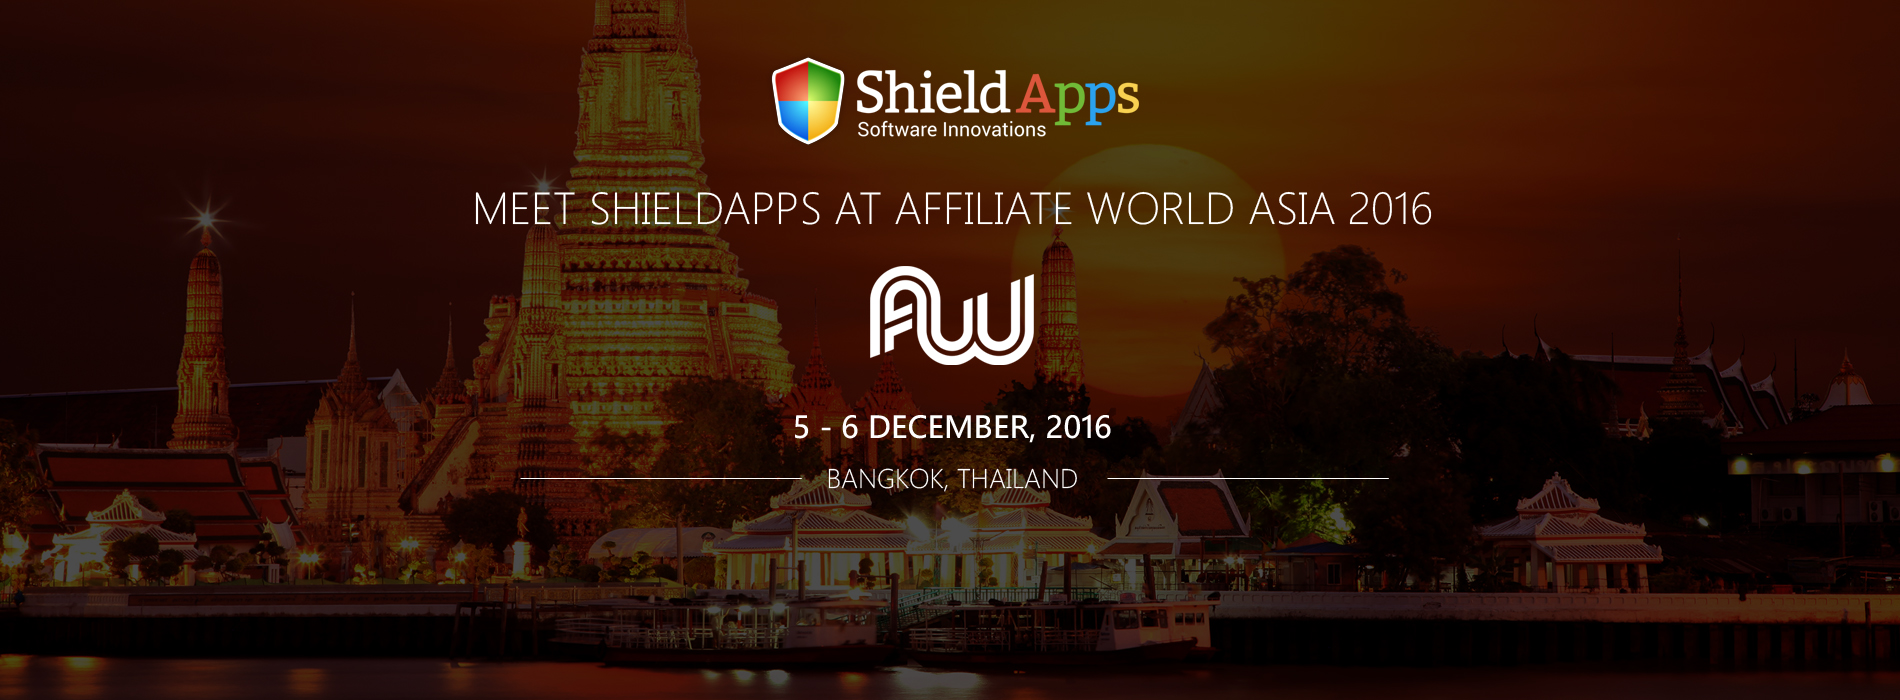 shieldapps-affiliate-banner-3